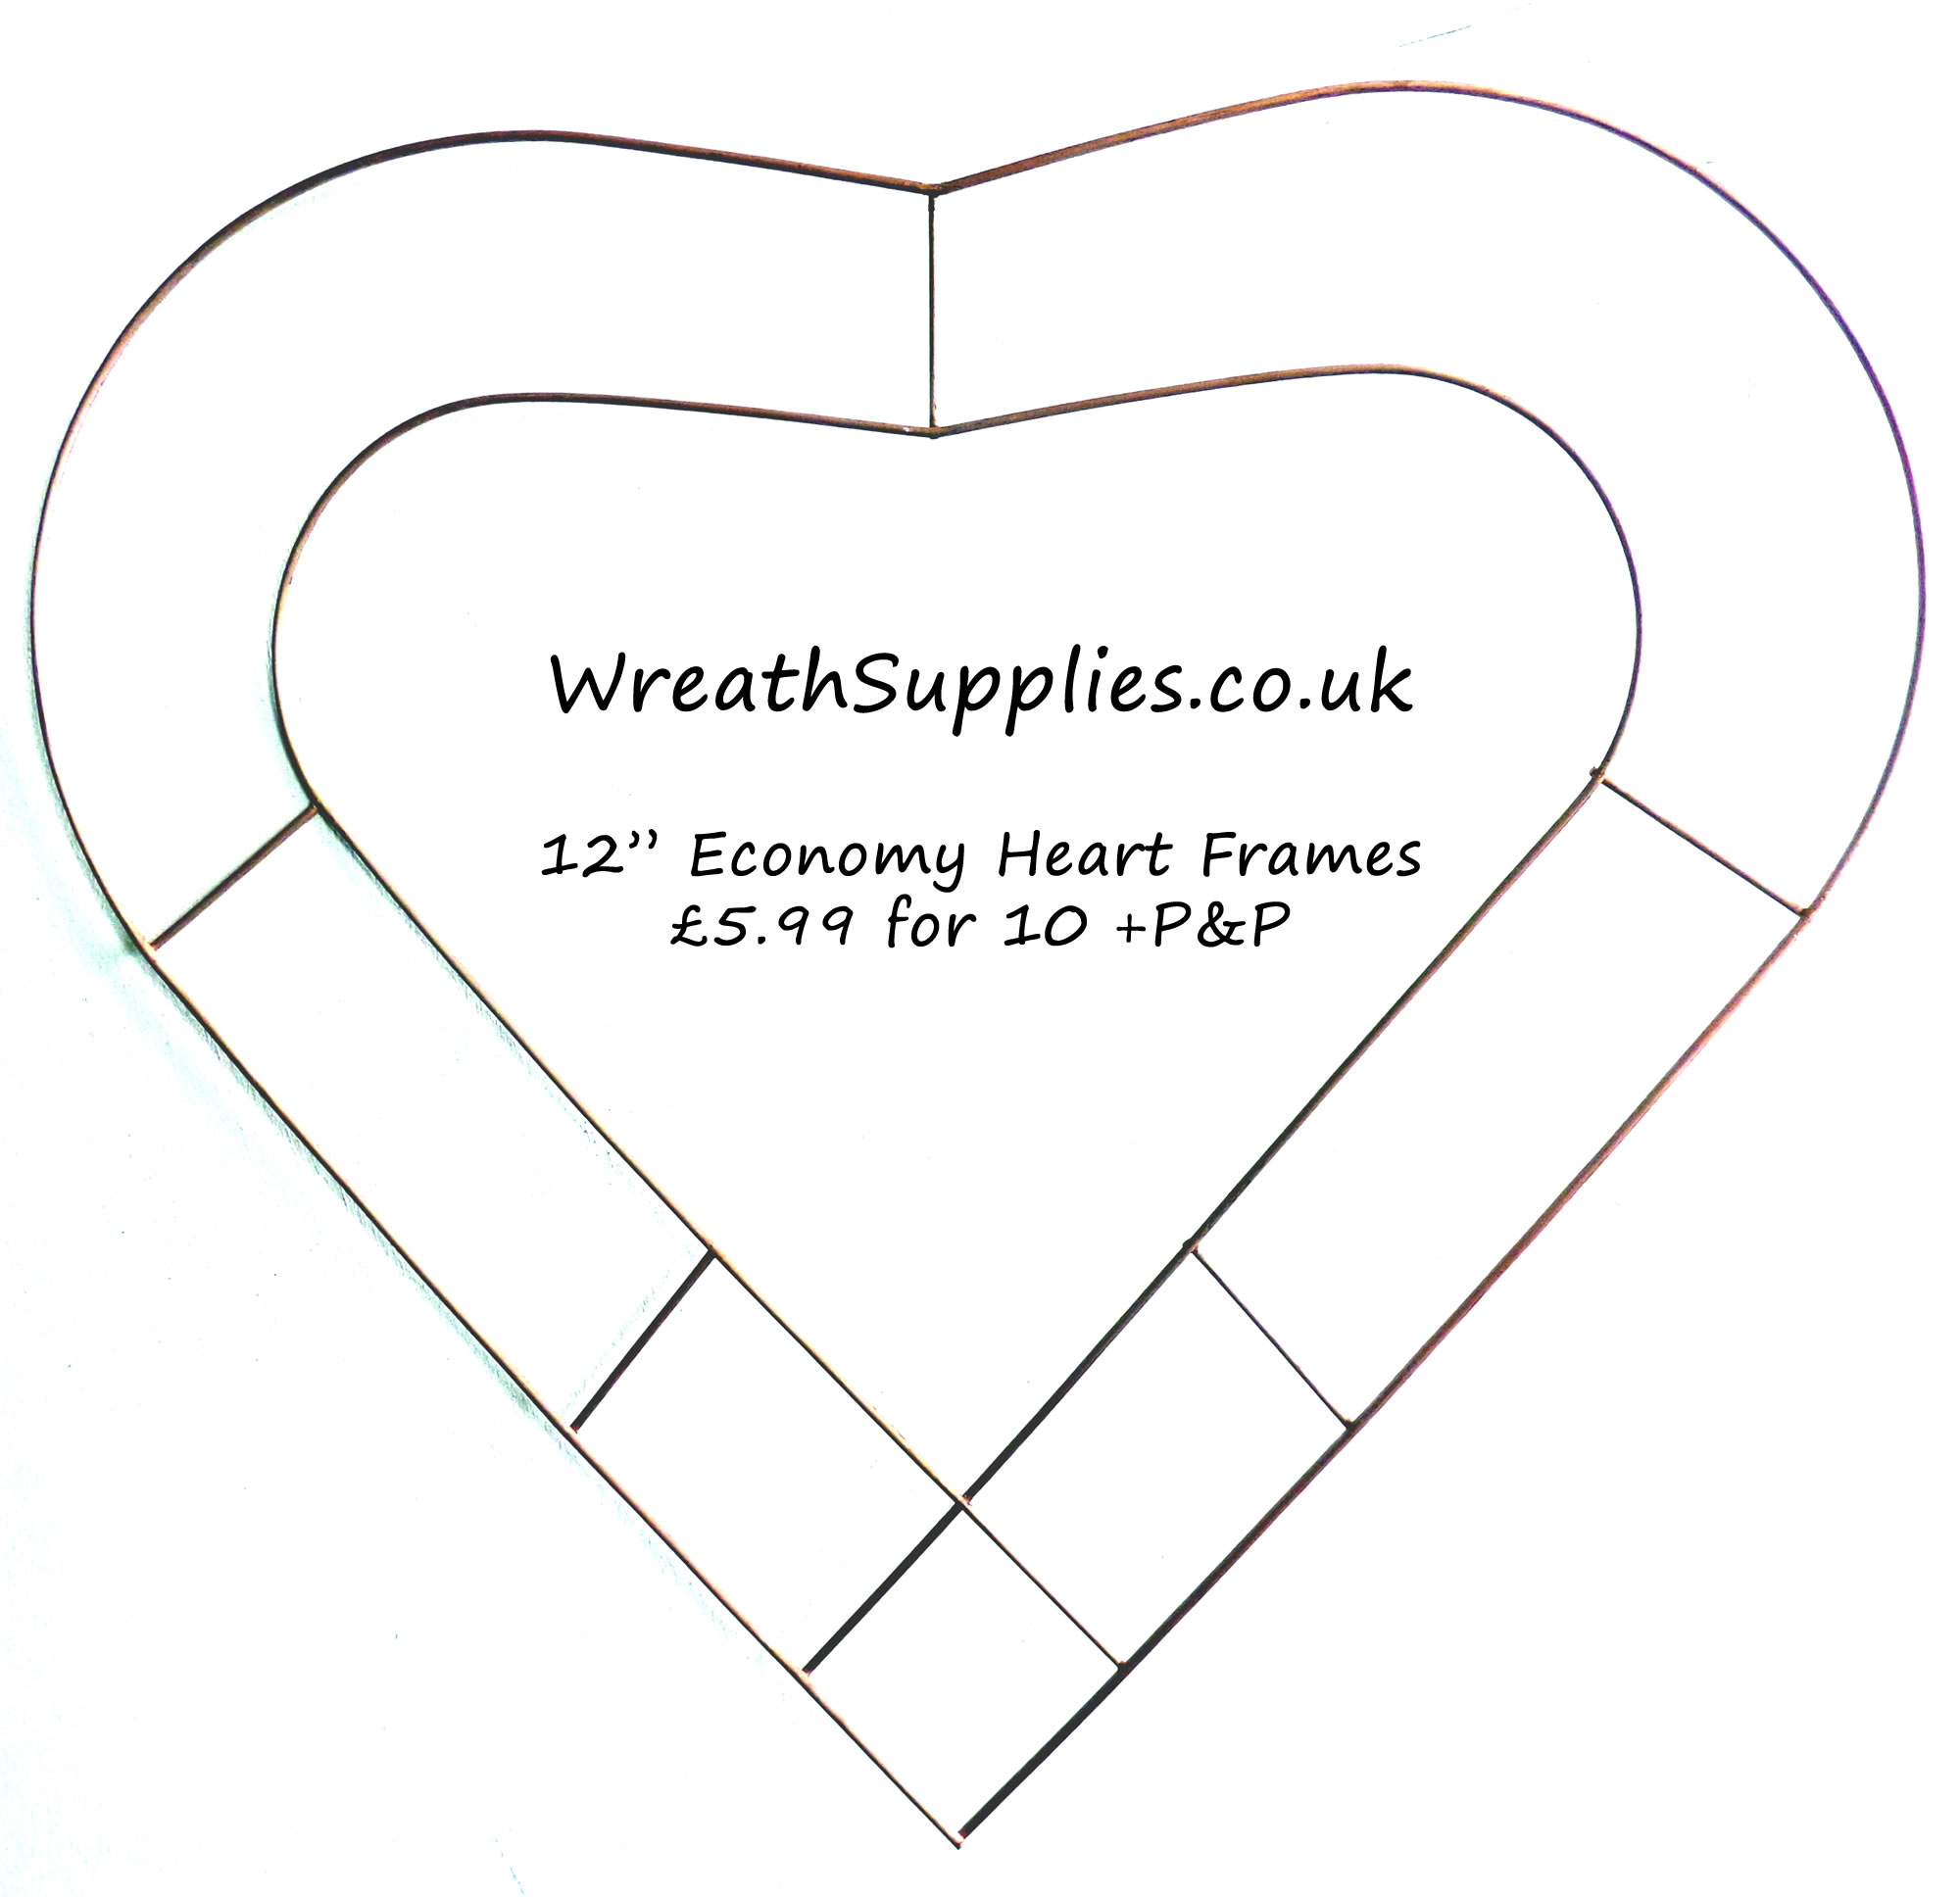 New wire heart frame for wreaths and crafts arrived